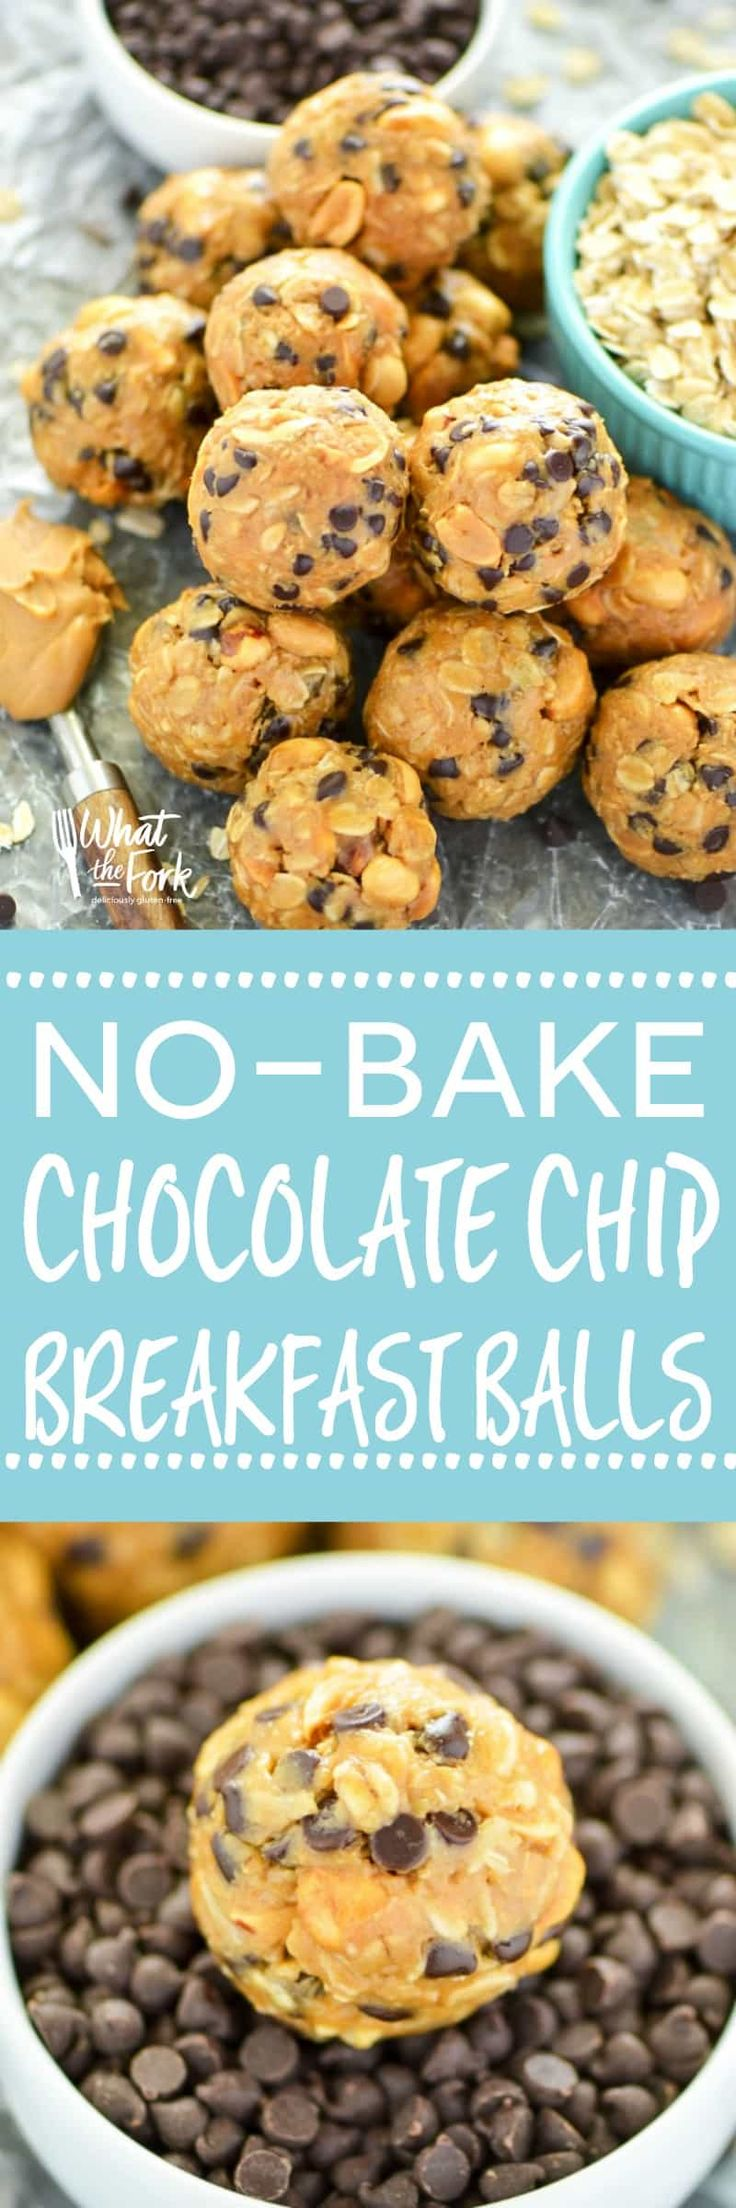 No-Bake Chocolate Chip Breakfast Balls - great for quick breakfasts for busy mornings and great for snacking! From the Easy Gluten Free cookbook. | @whattheforkblog | whattheforkfoodblog.com | gluten free breakfast recipes | gluten free snacks | no-bake r (Snacks Chocolate Easy)